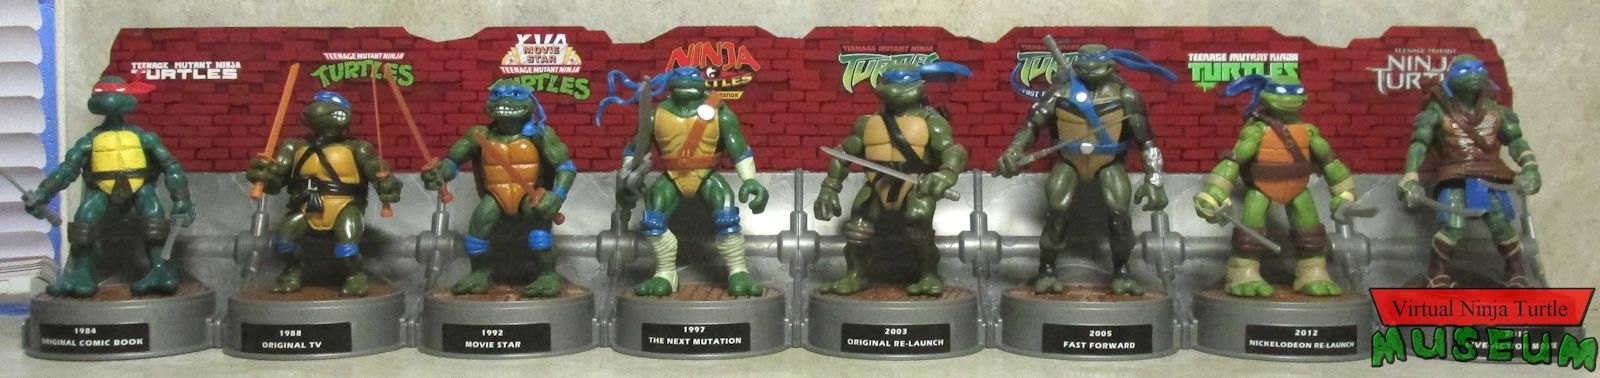 History Of Teenage Mutant Ninja Turtles featuring Leonardo box set